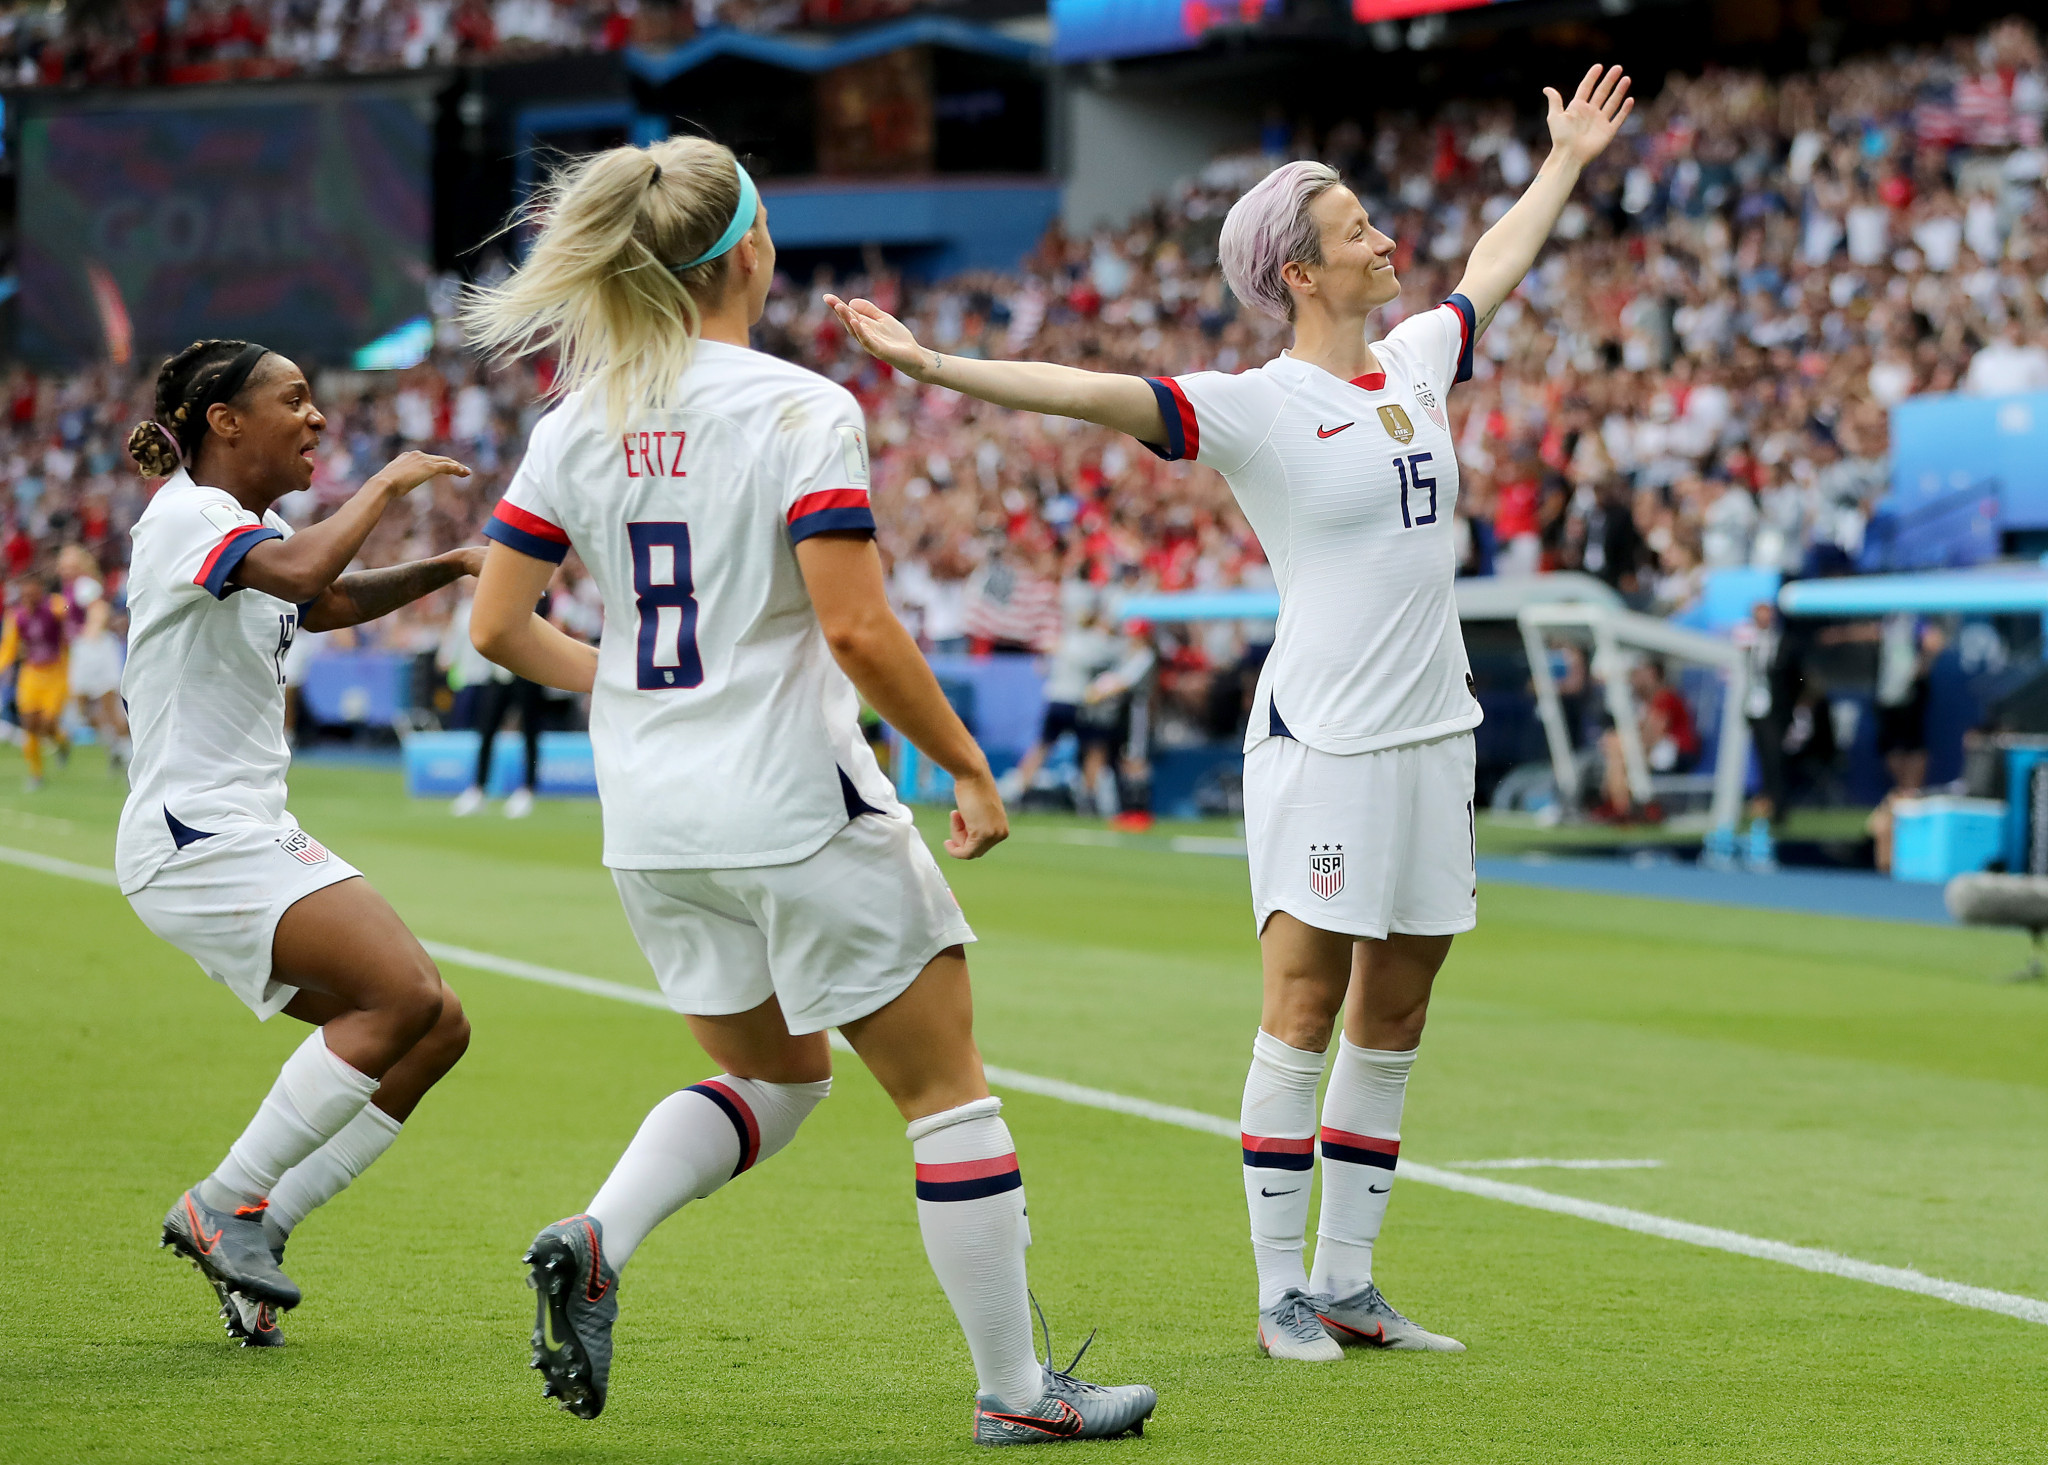 Megan Rapinoe of the United States caught the attention of President Donald Trump while playing in the Women's World Cup ©Getty Images